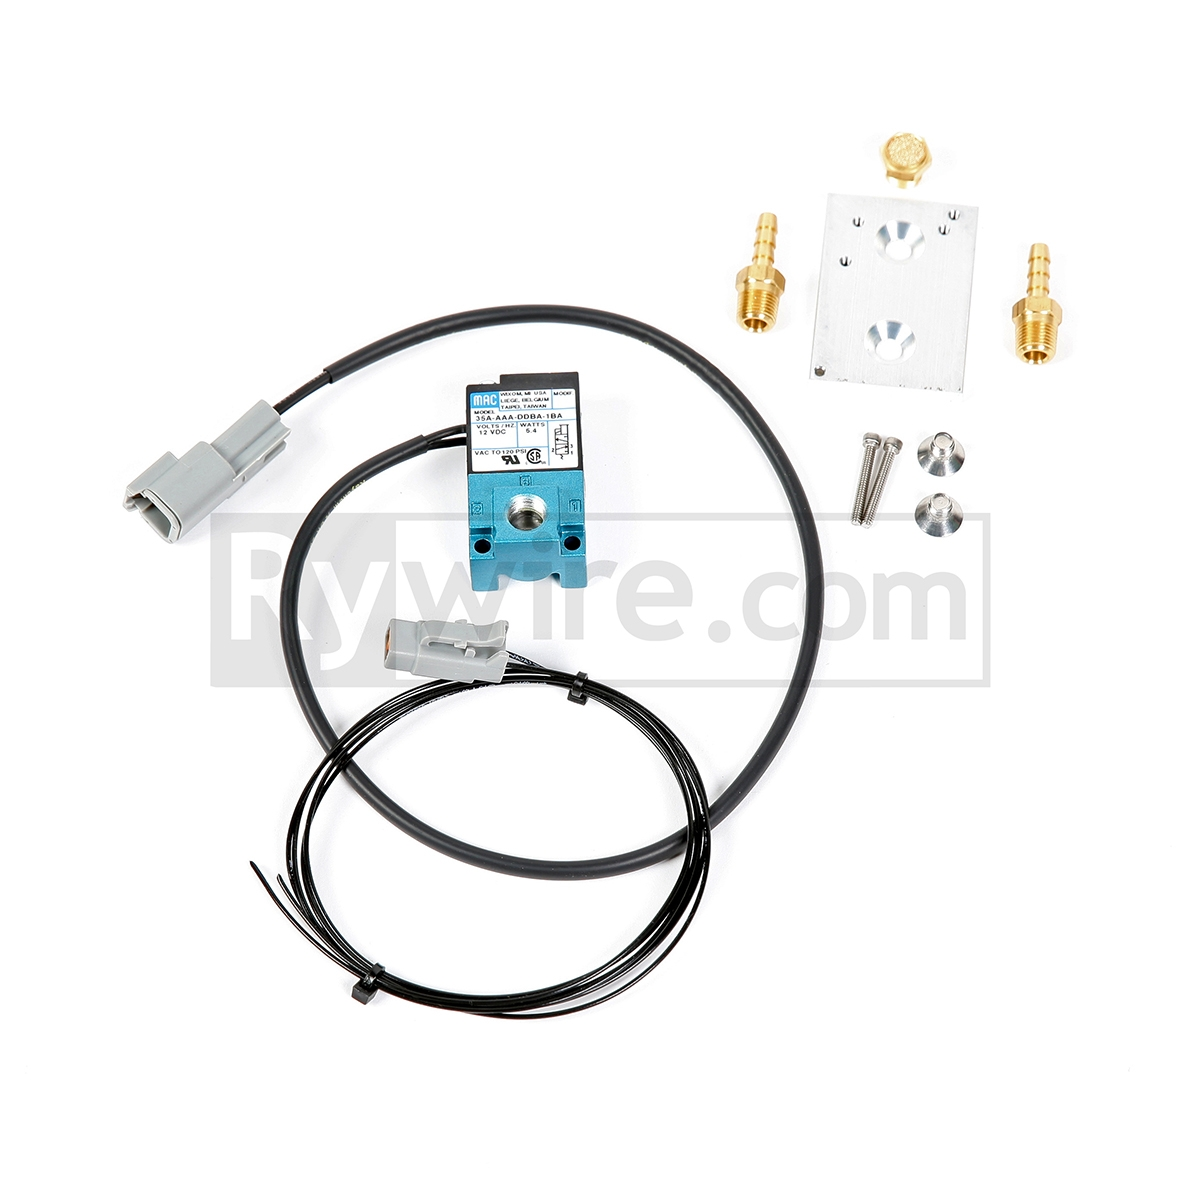 boost sol 4port 2?1403810802 rywire boost solenoid kit (4 port)  at arjmand.co